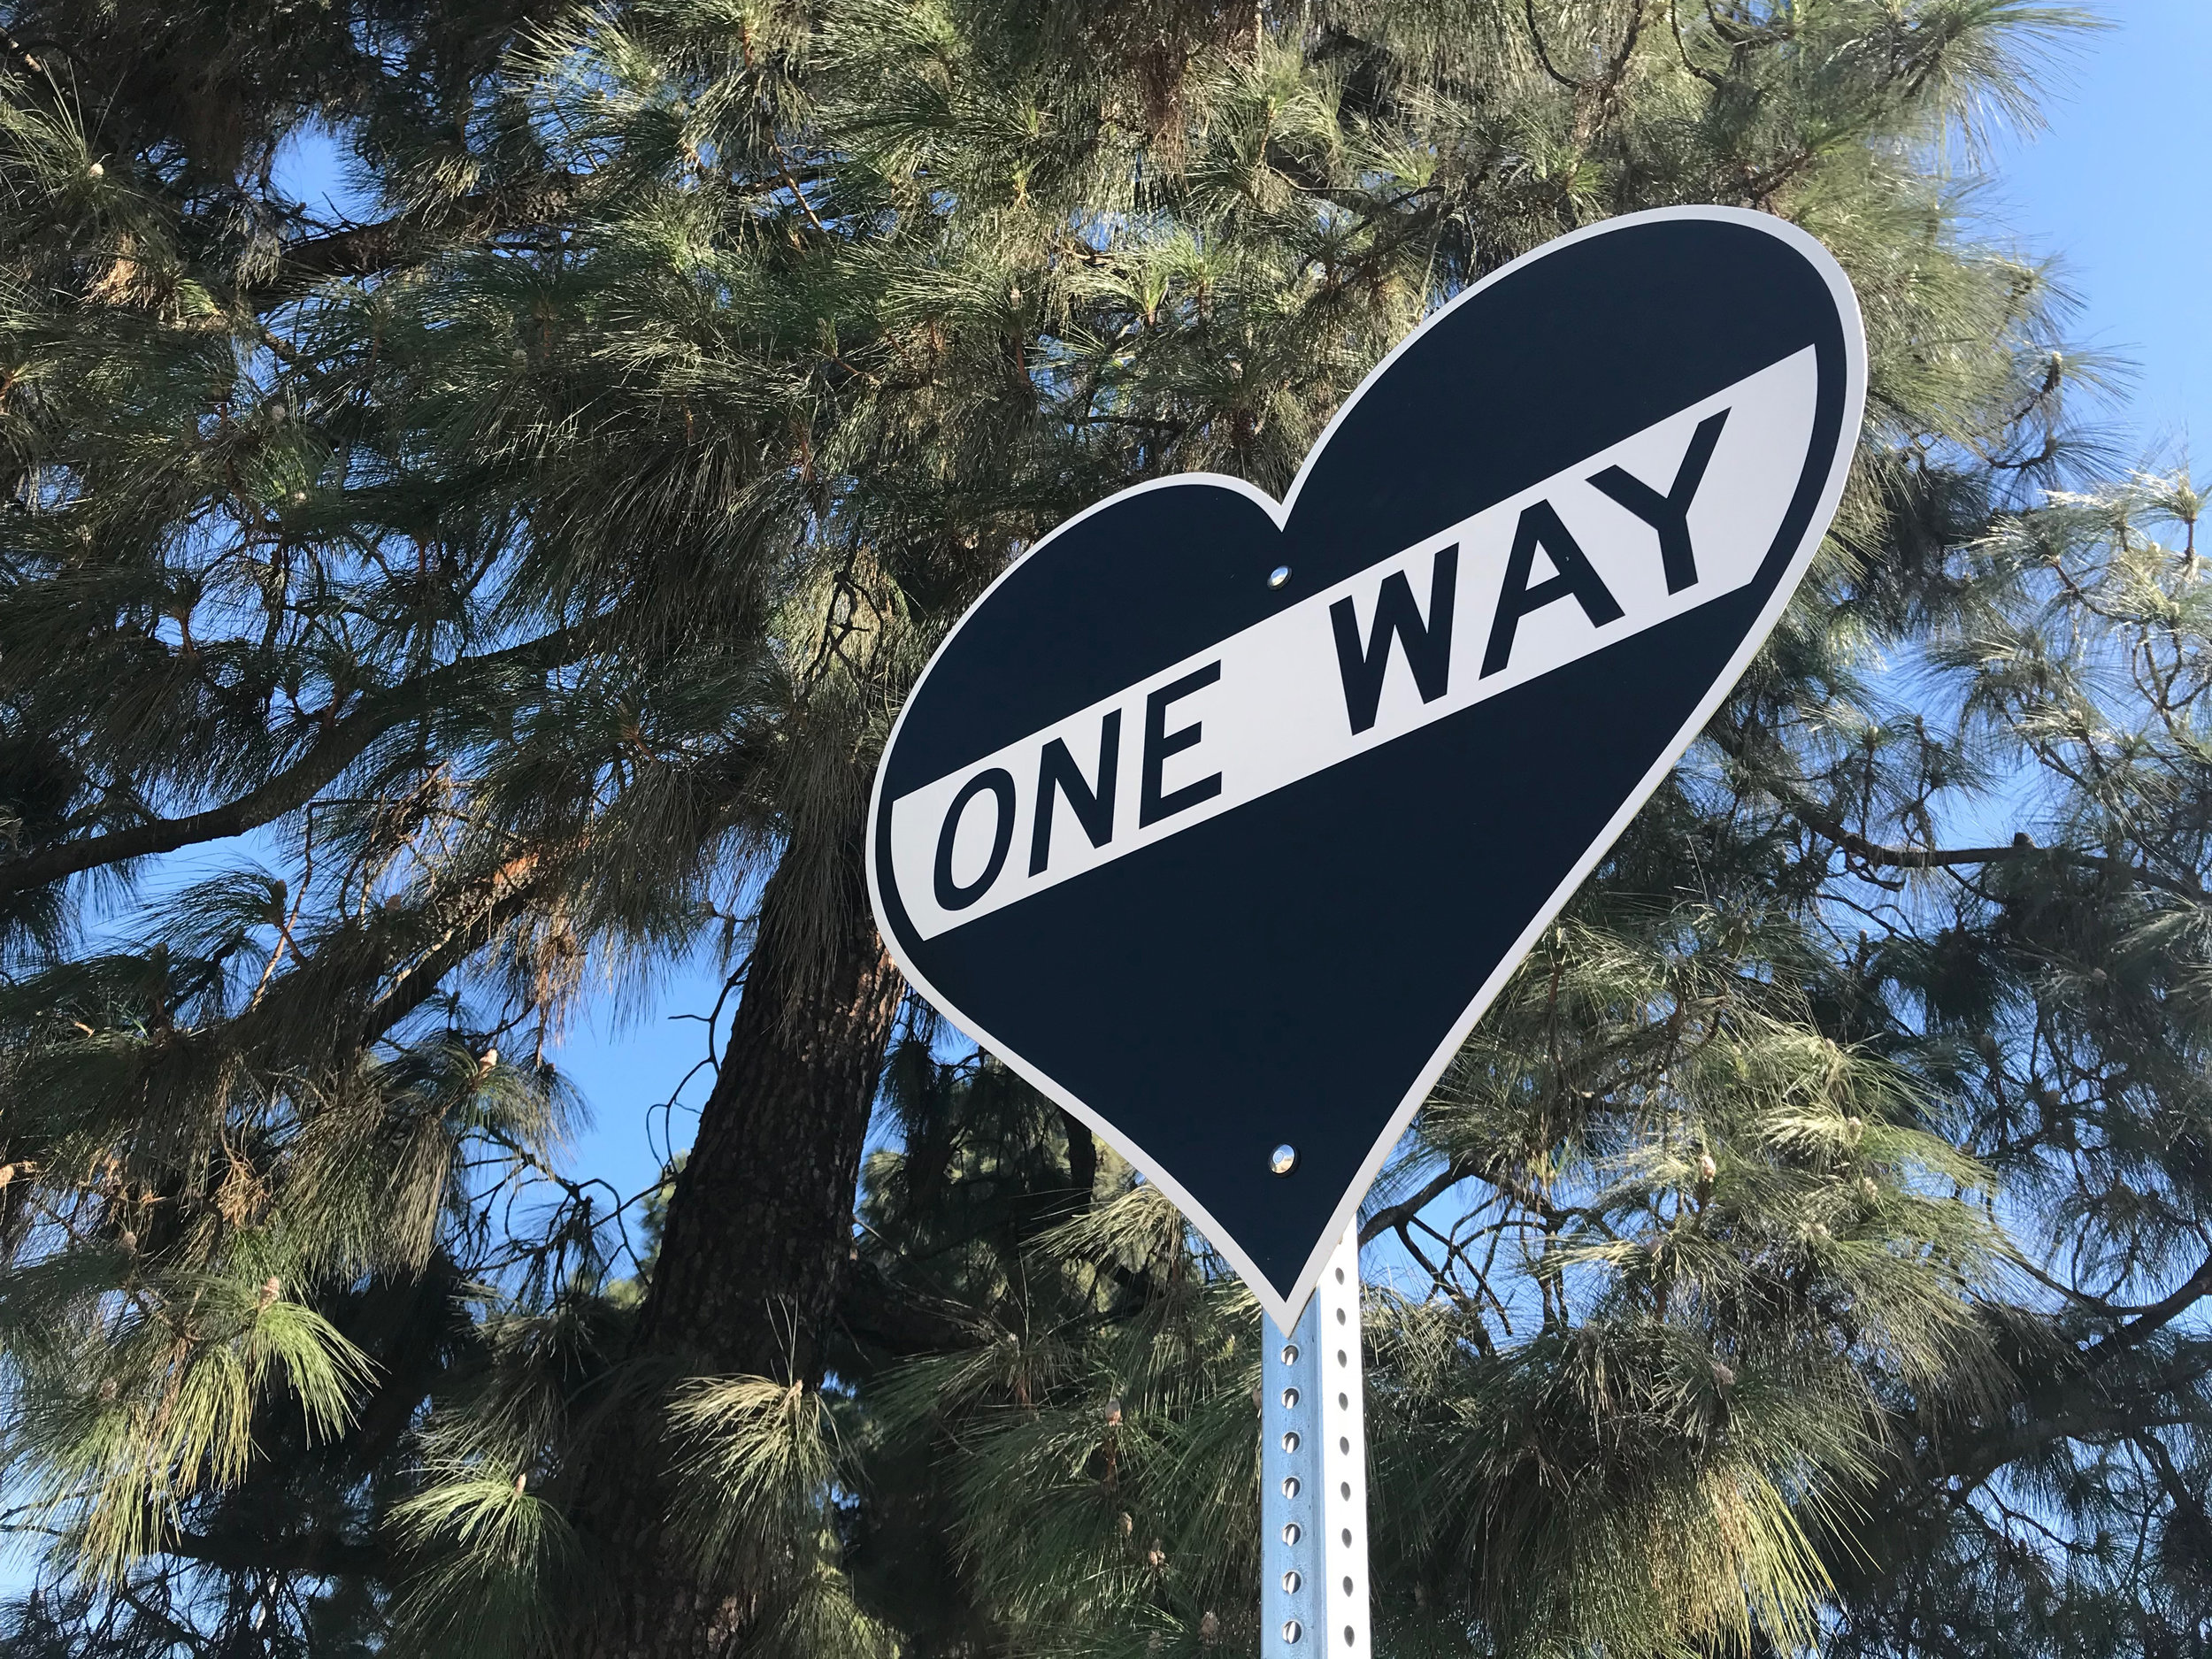 """One Way"" by Scott Froschauer"